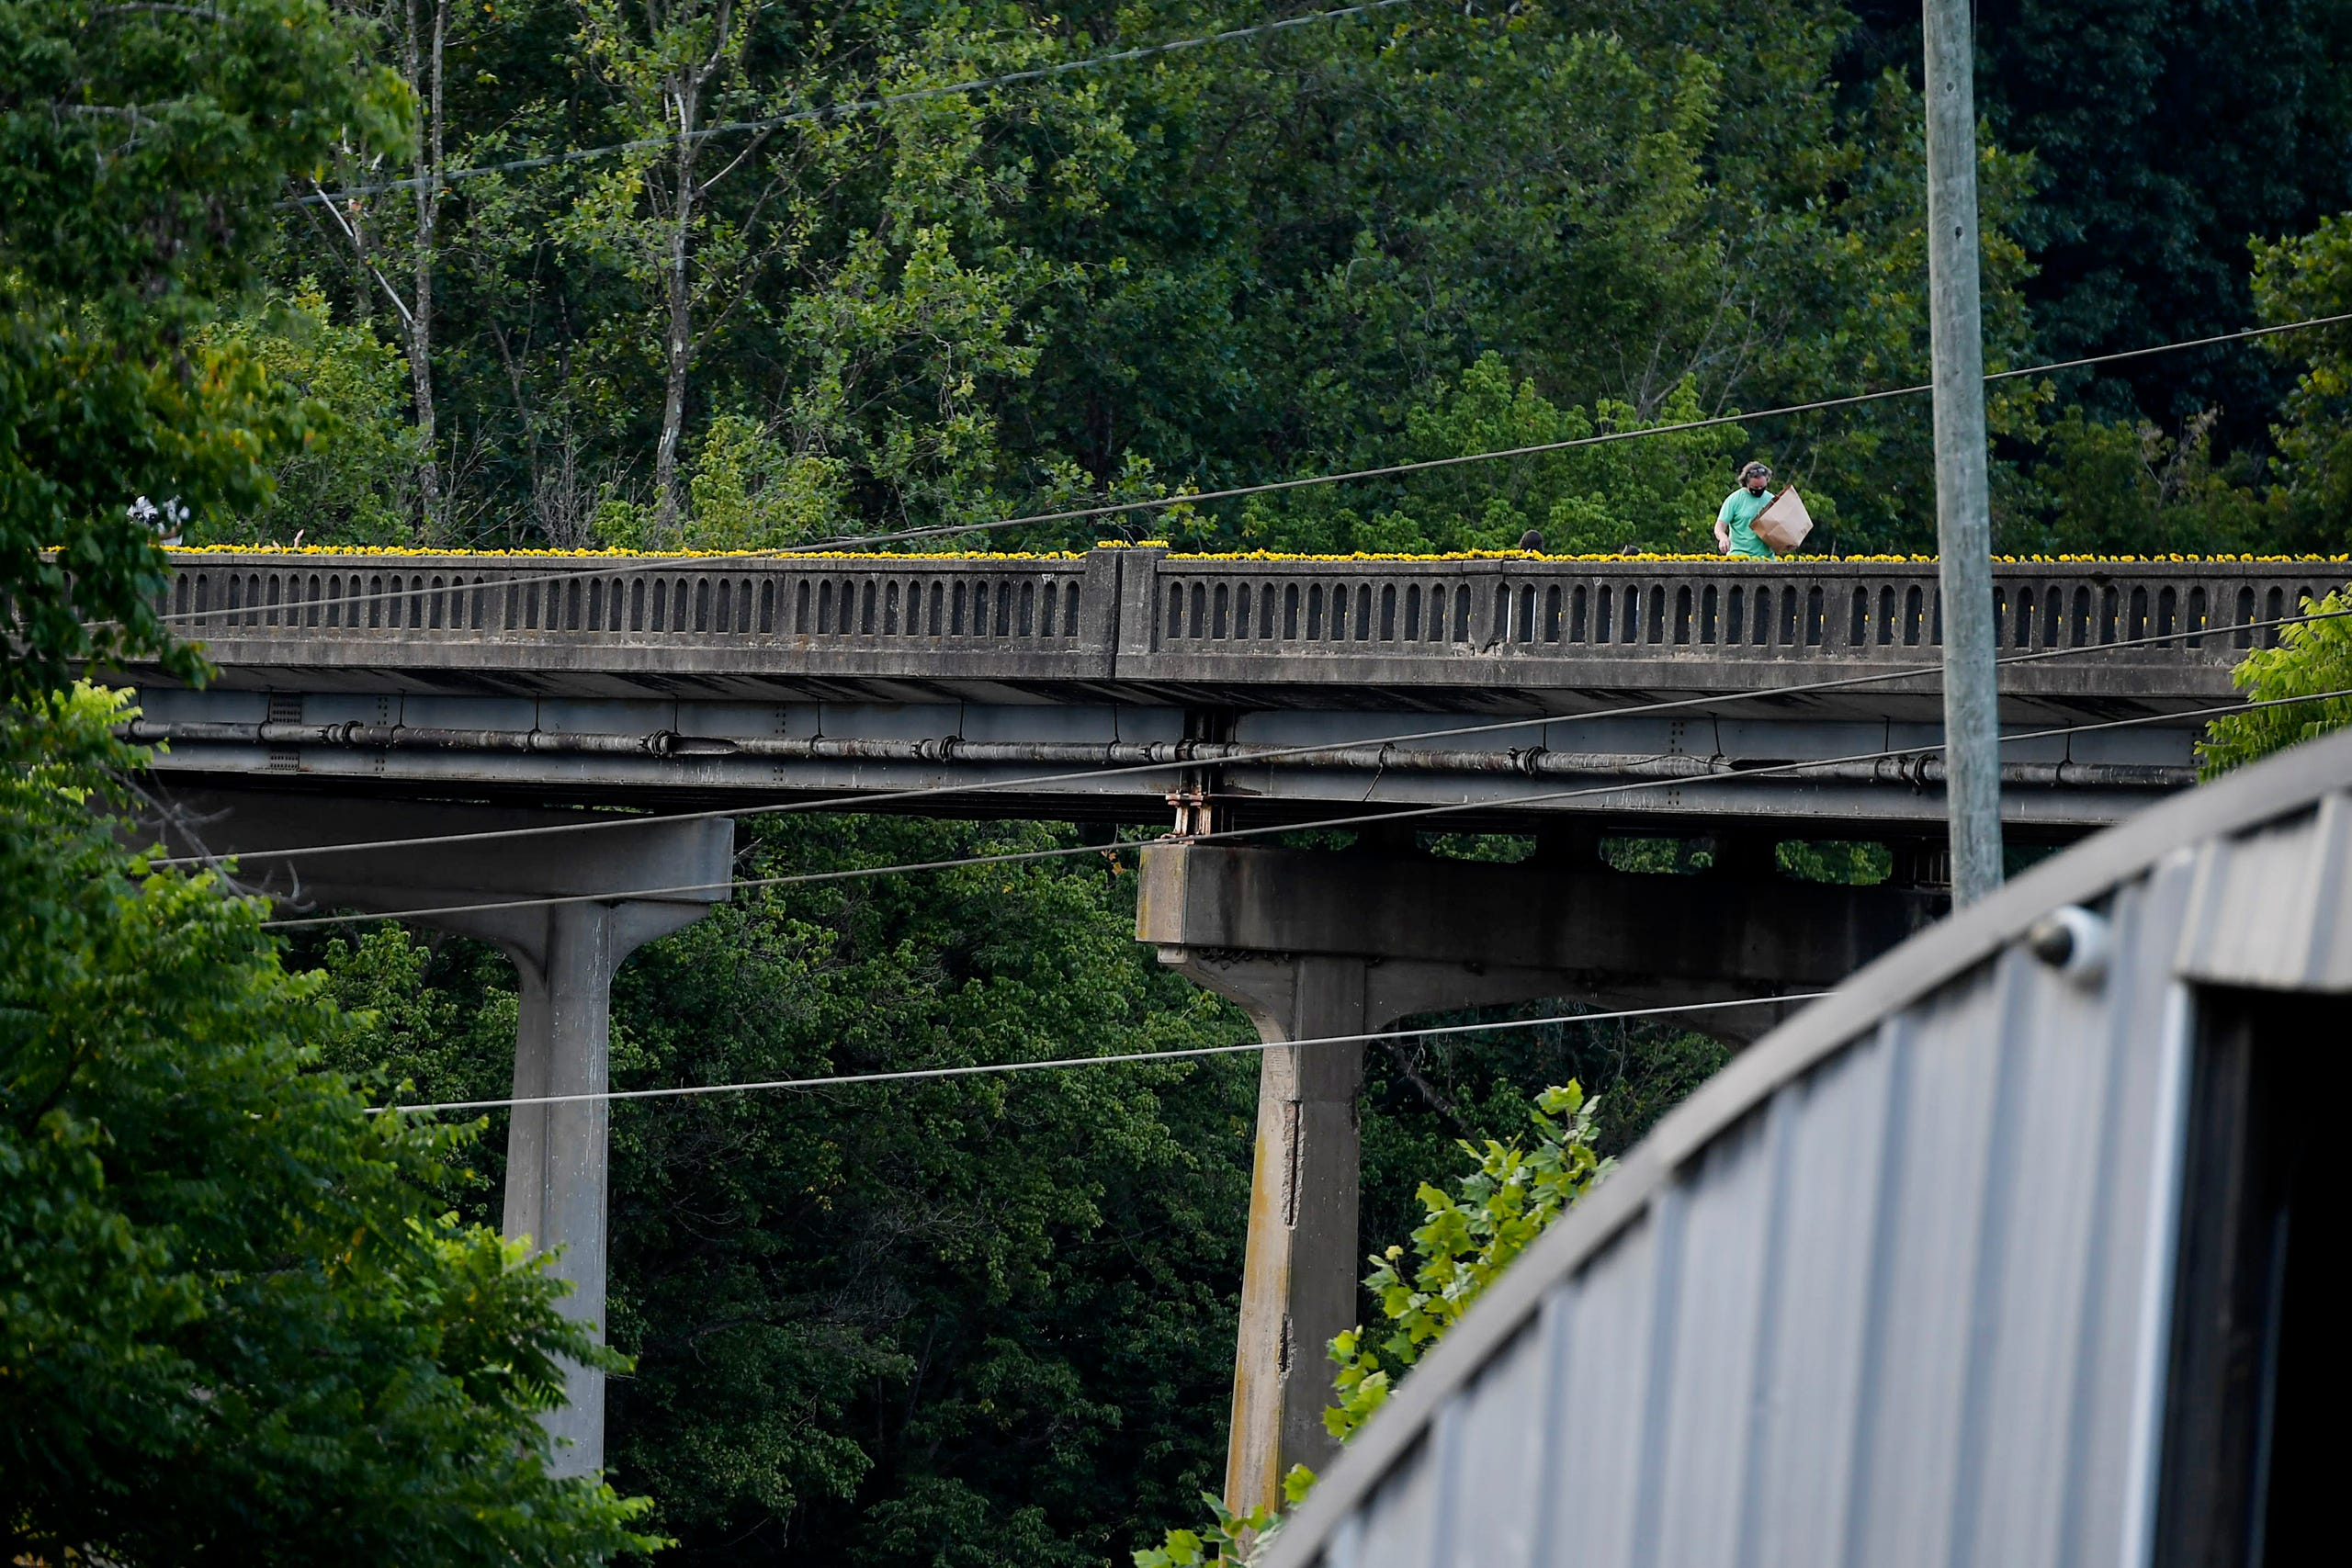 Residents of the Olivette community picked sunflowers to spread cheer across the Craggy Bridge in Woodfin August 19, 2020.